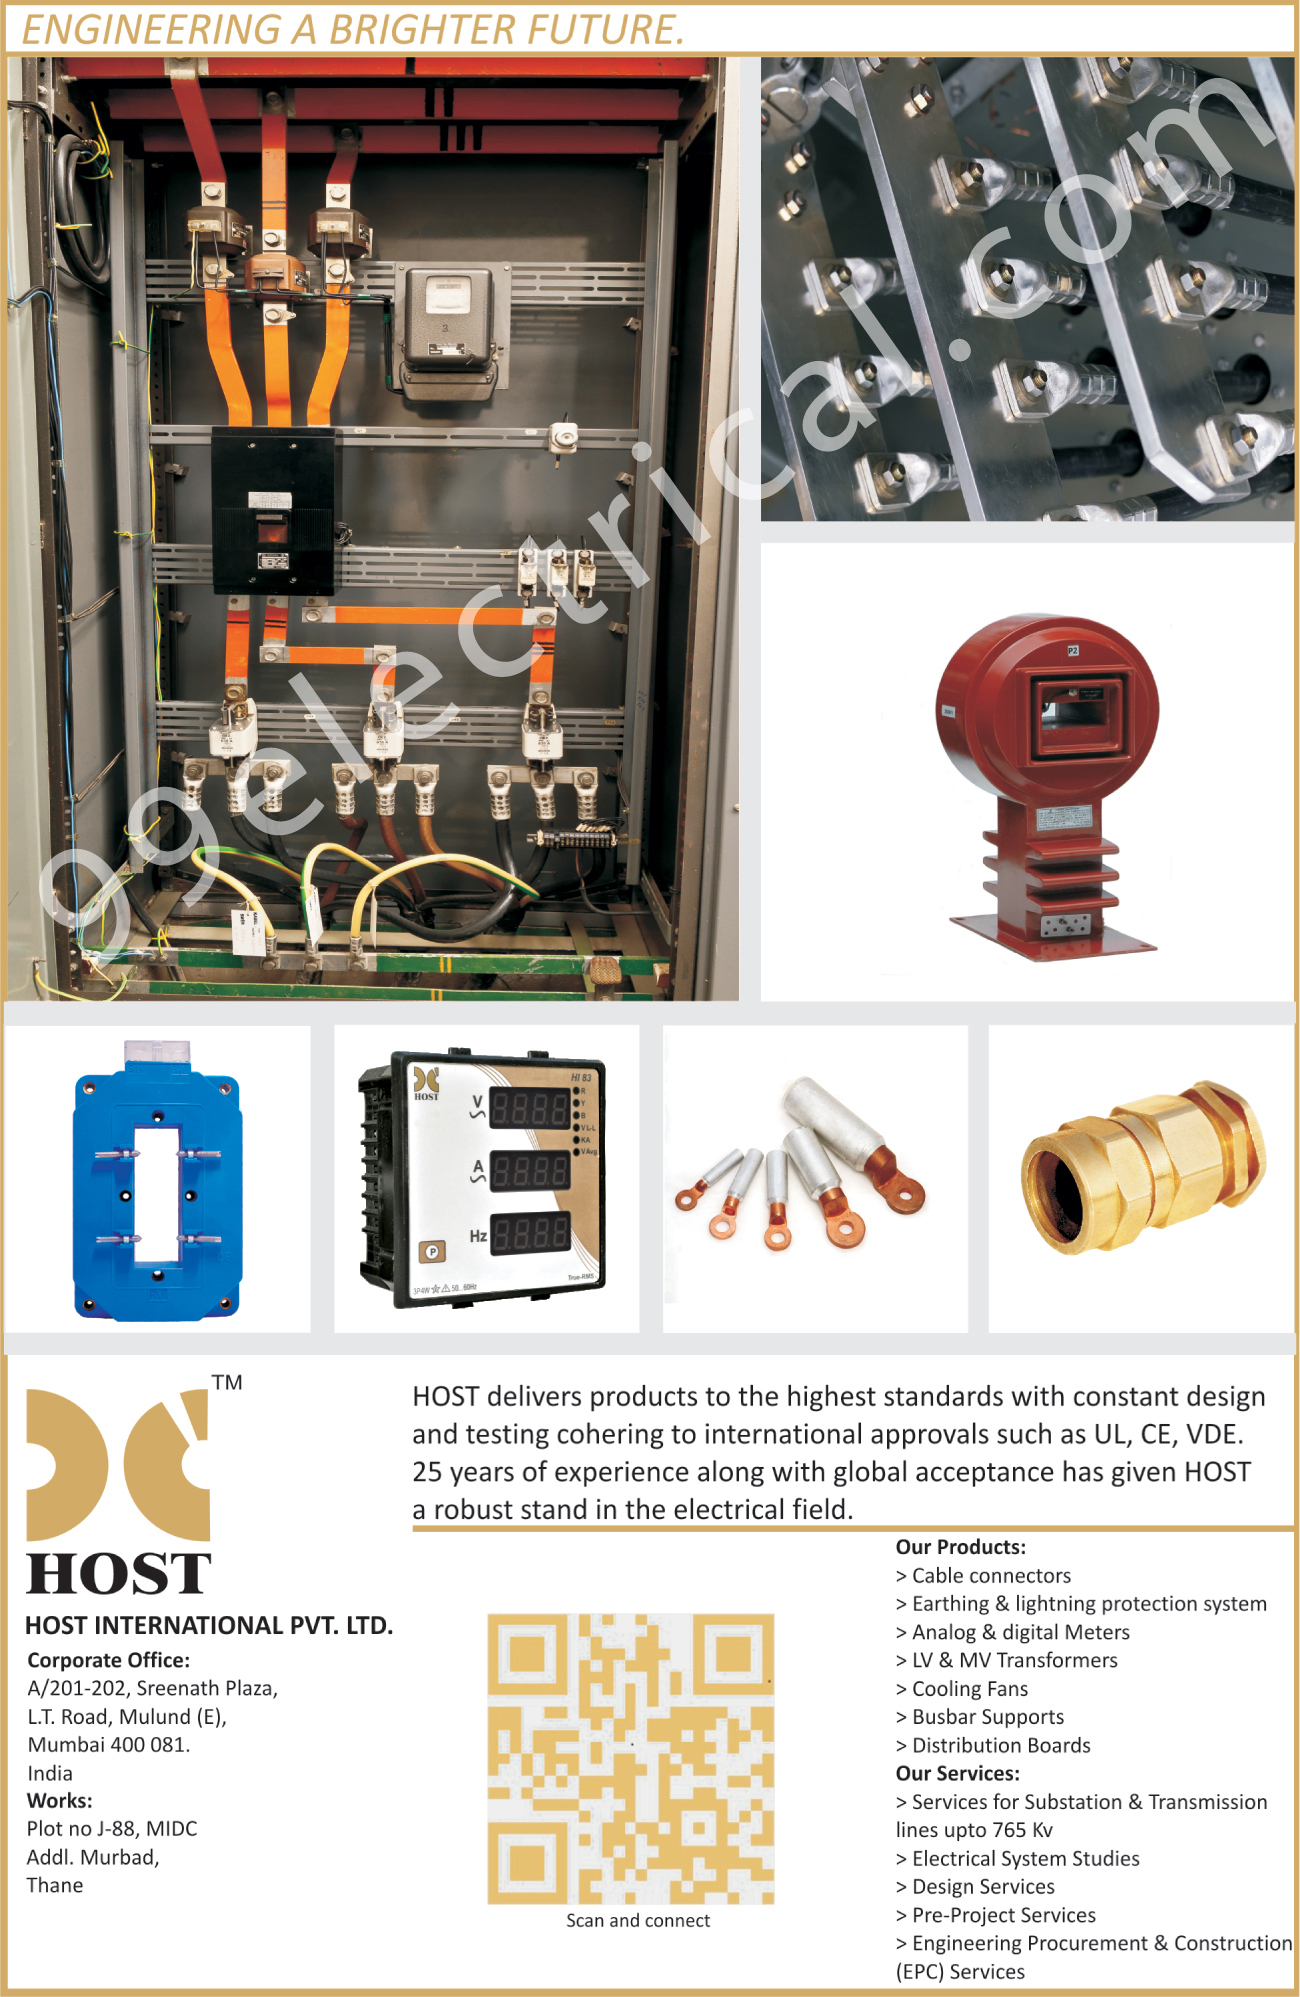 Cable Connectors, Earthing Protection Systems, Light Protection Systems, Analog Meters, Digital Meters, LV Transformers, MV Transformers, Cooling Fans, Busbar Supports, Distribution Boards,Electrical Products, Electrical Parts, Analog Motors, Digital Motors, Earthing Lighting Protection System, Transformers, Connectors